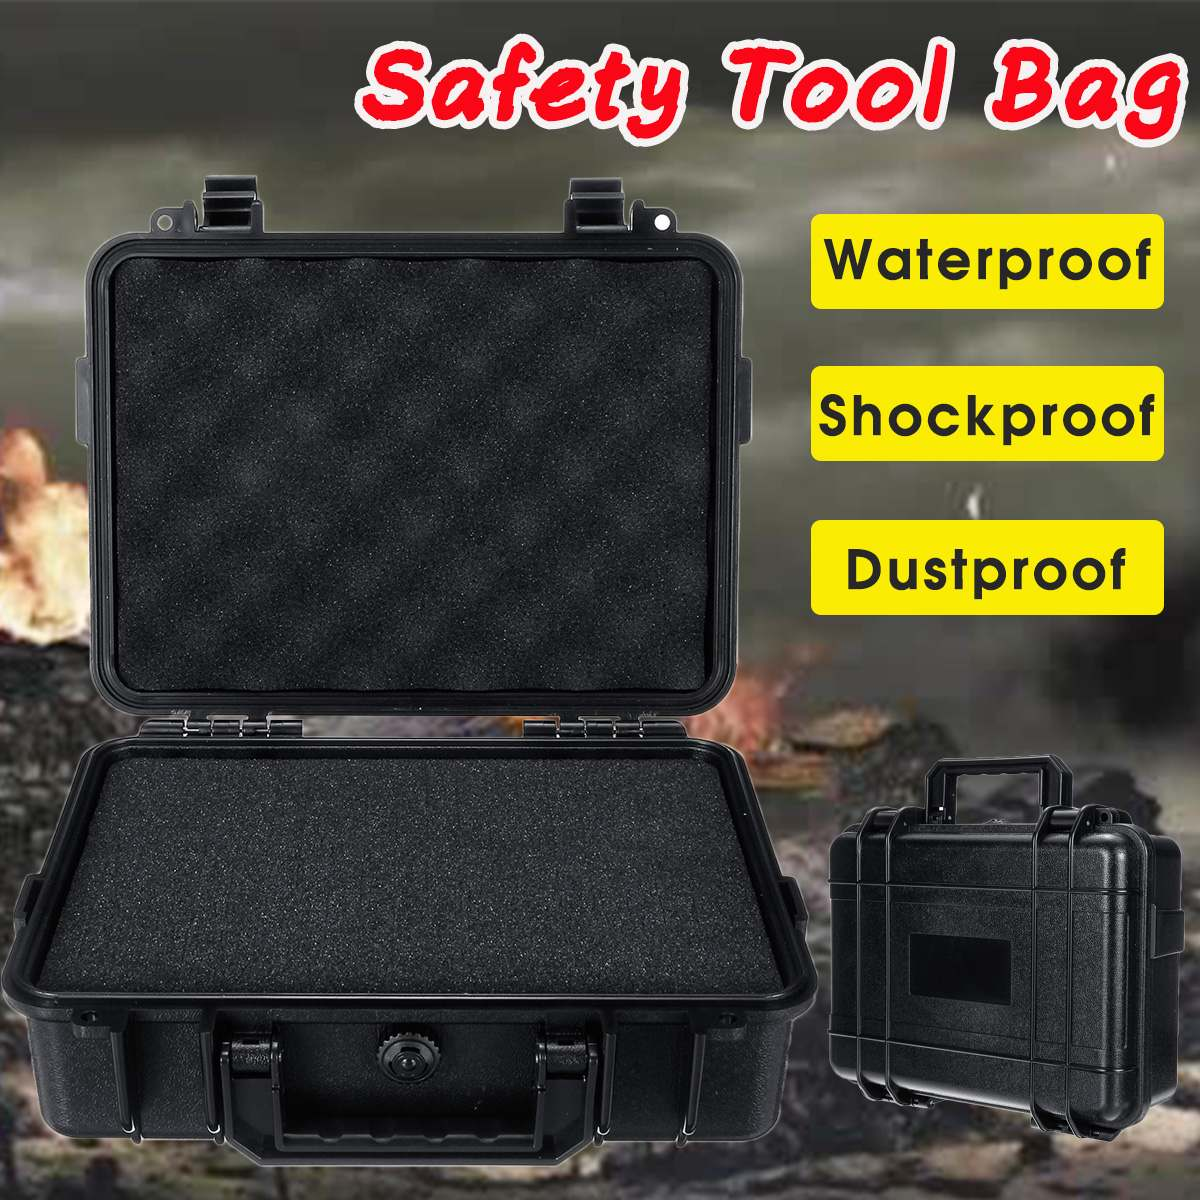 Waterproof Safety Case ABS Plastic Tool Box Tactical Dry Box Sealed Safety Equipment Storage Toolbox Outdoor Tool Container|Tool Cases| |  - title=